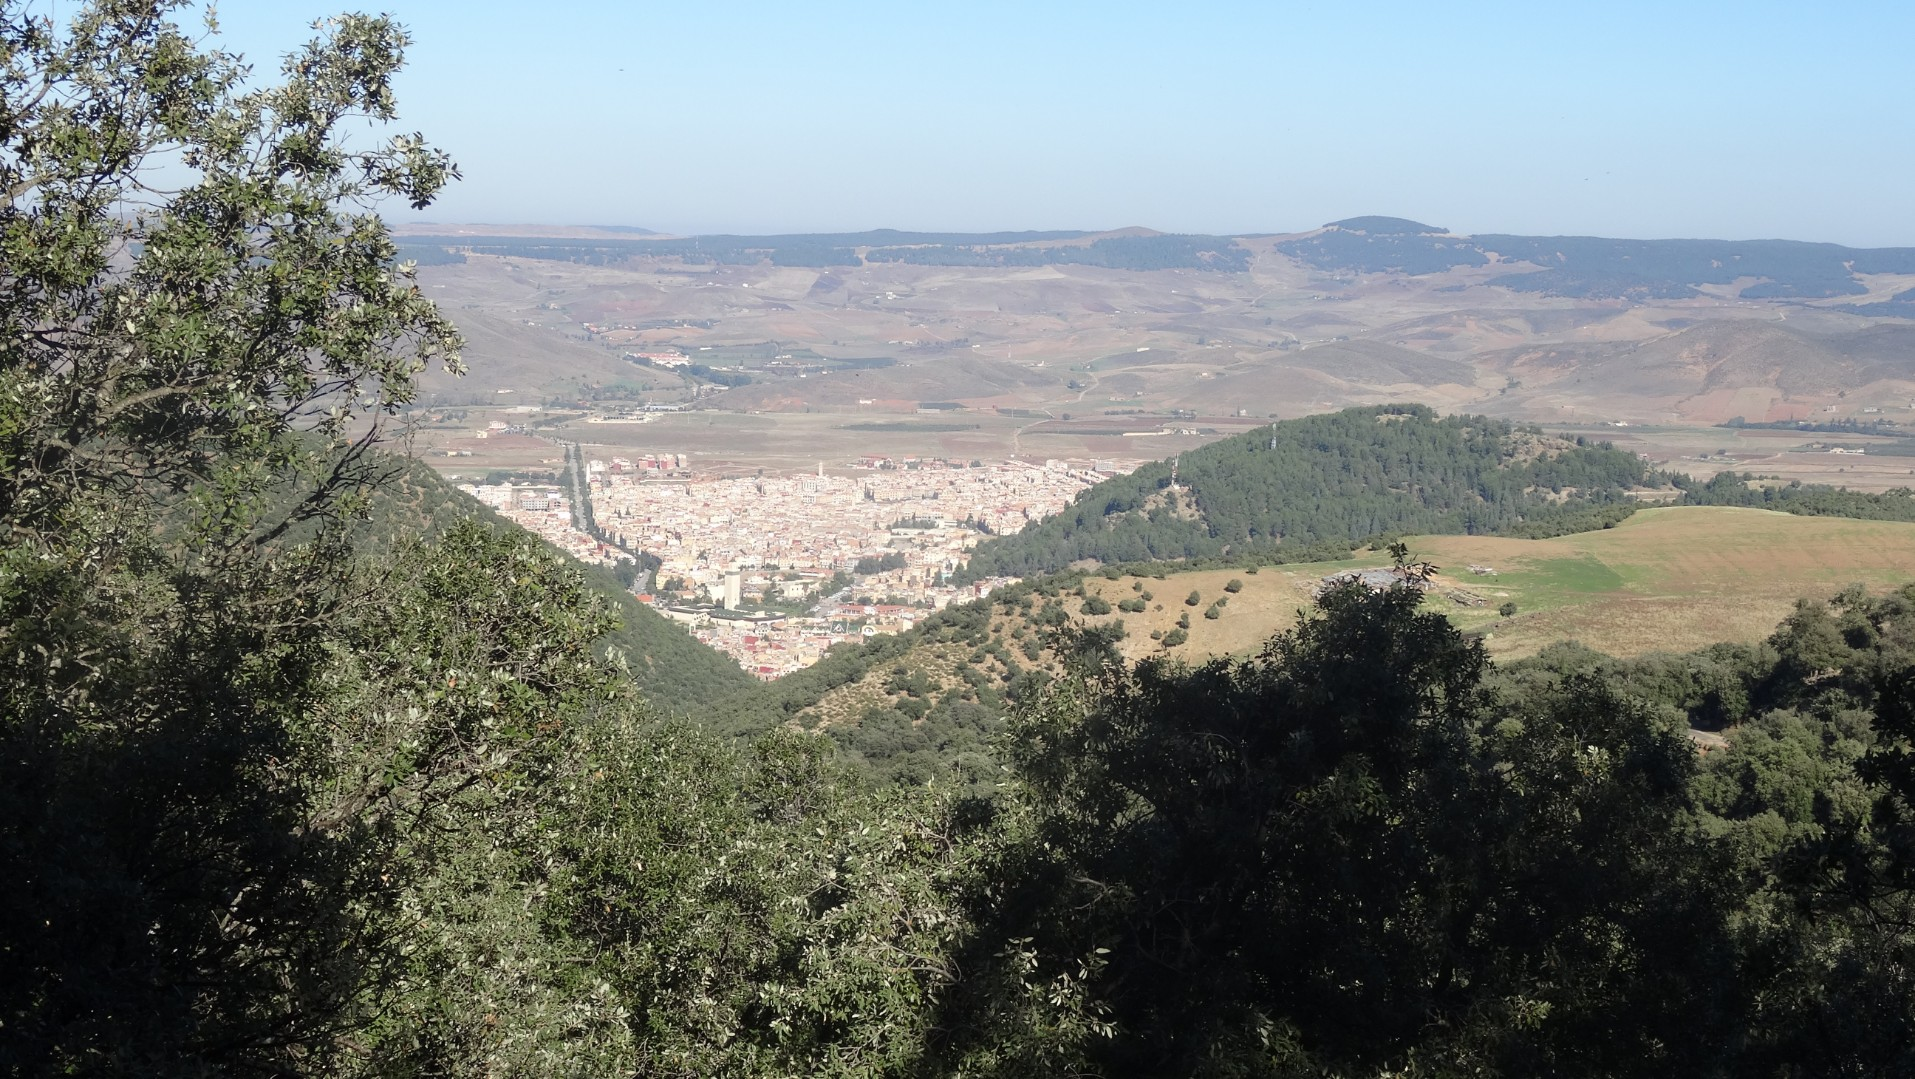 Looking down to Azrou